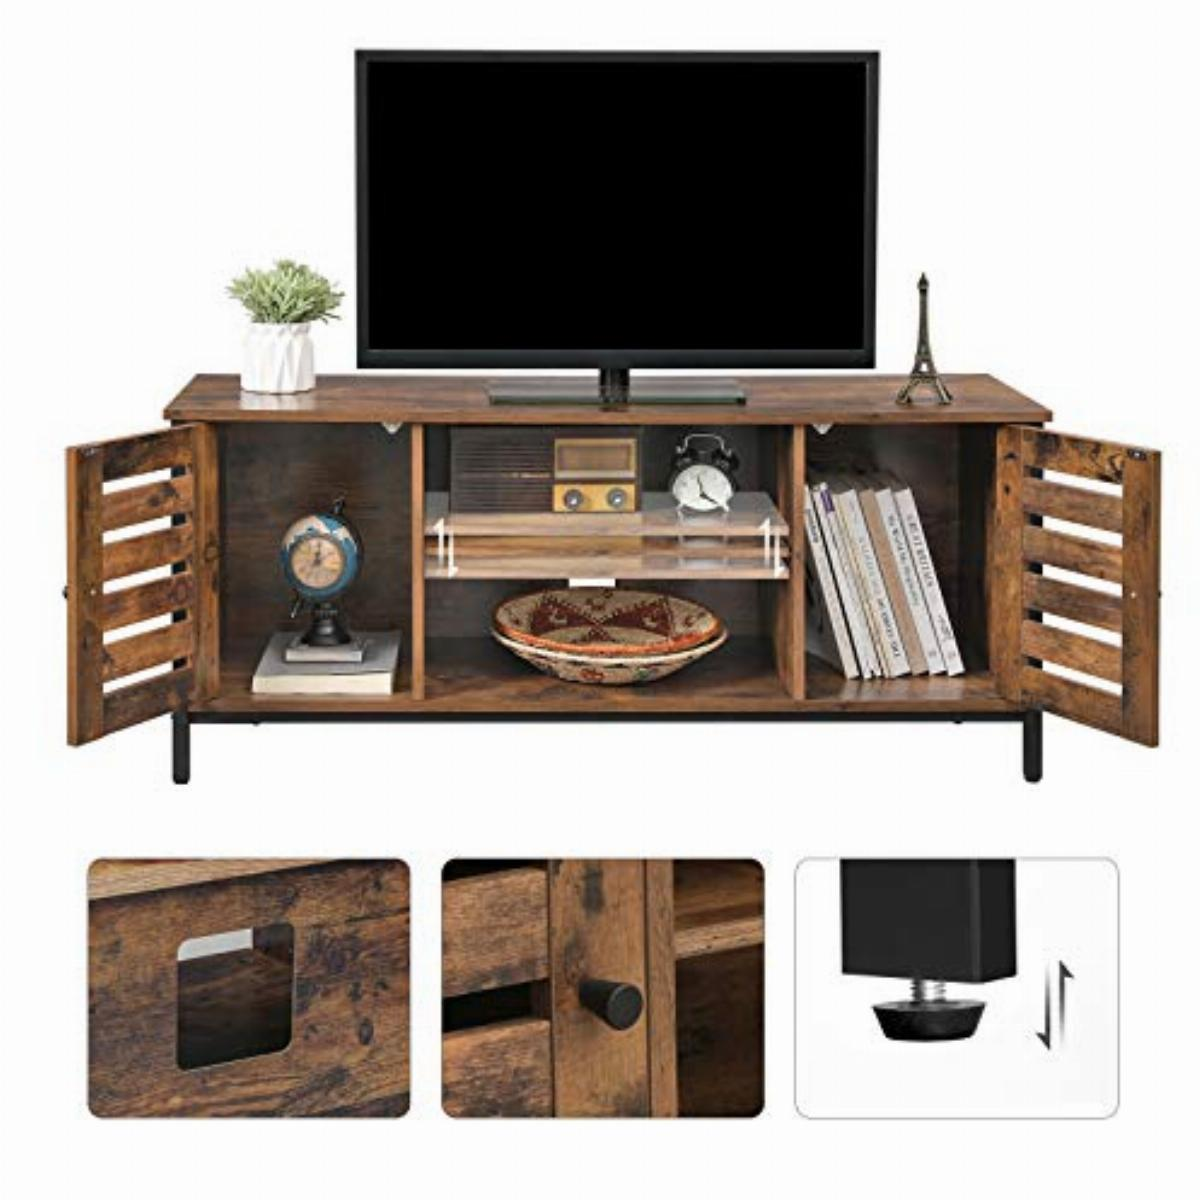 Vasagle Tv Stand Tv Console Unit With Shelves Cabinet With Storage Louvred Doors For Living Room Entertainment Room Rustic Brown And Black Ltv43bx